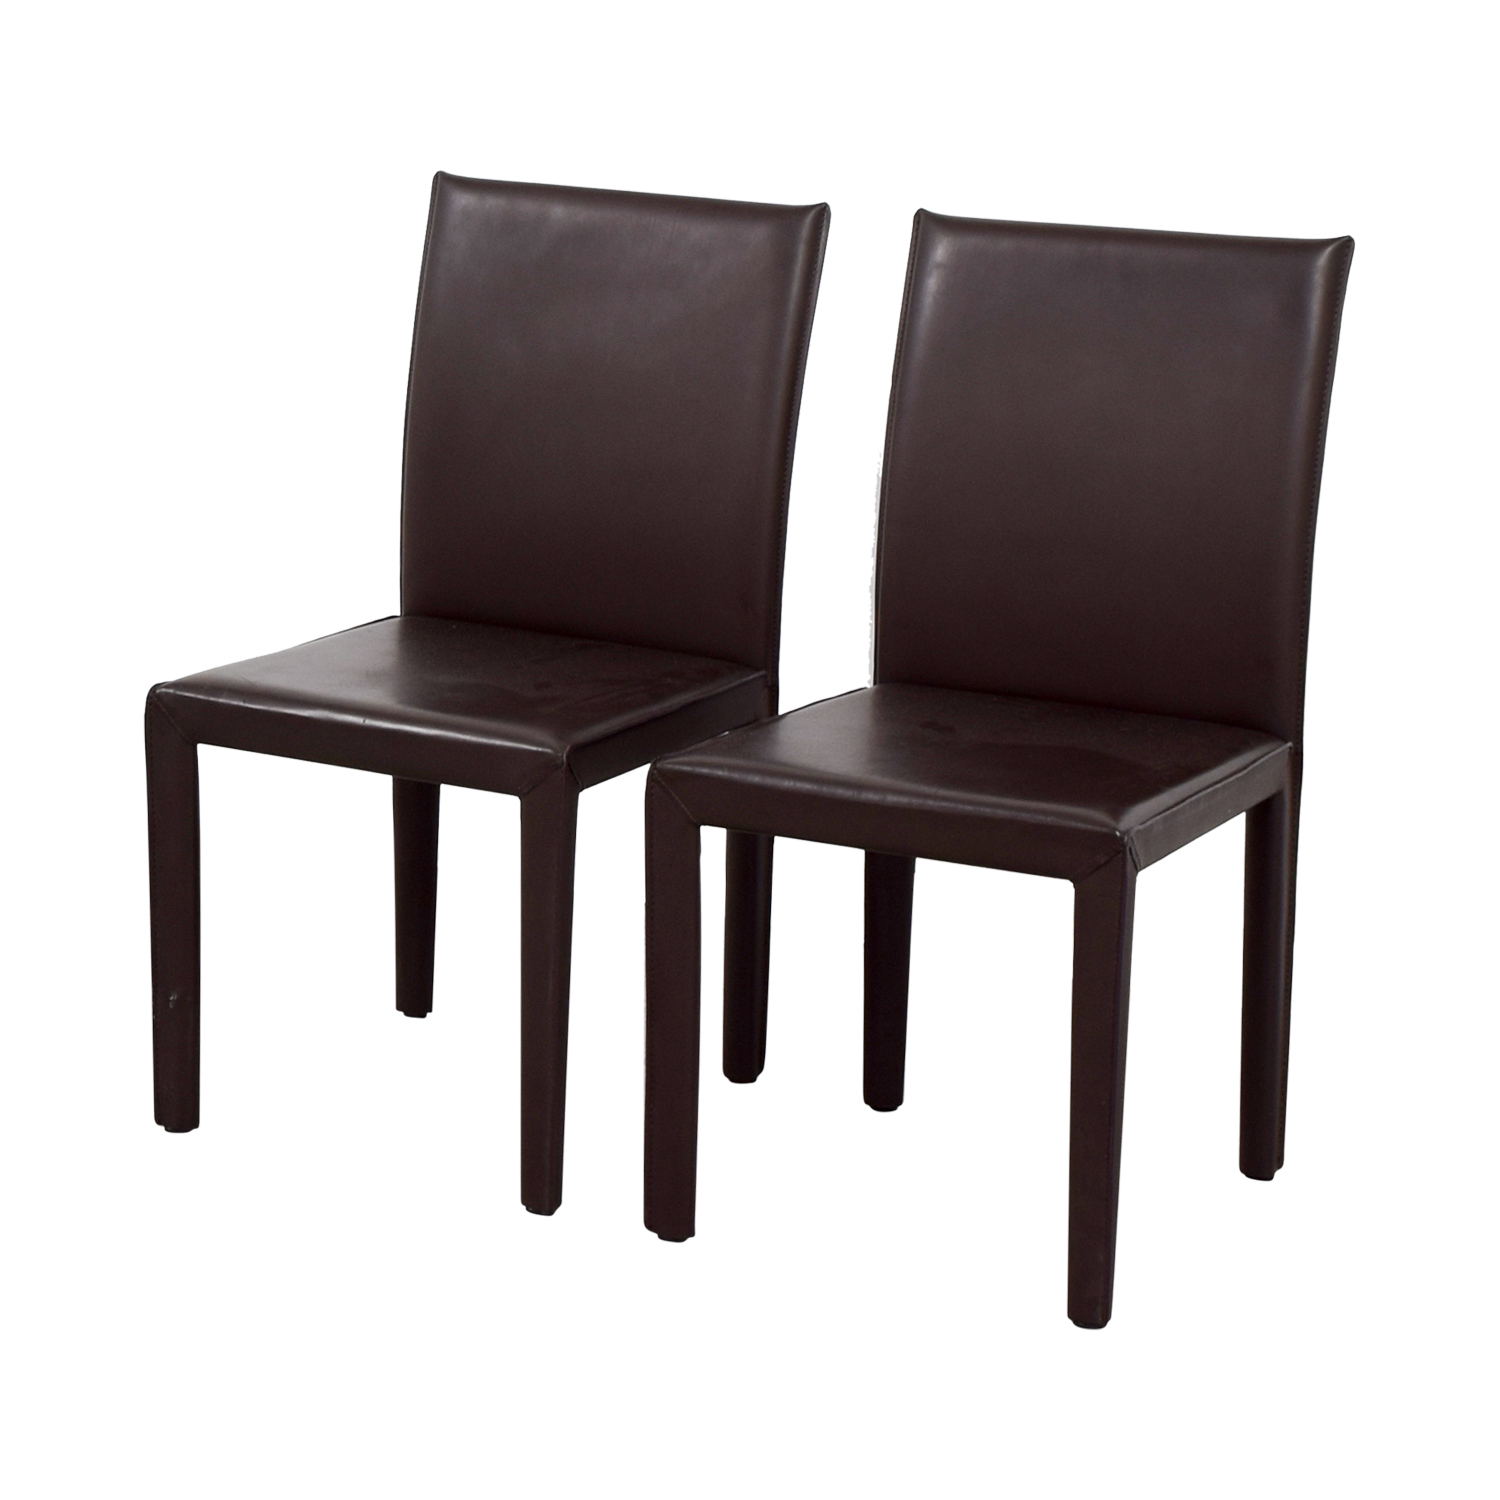 Maria Yee Maria Yee Mondo Brown Leather Dining Chairs on sale